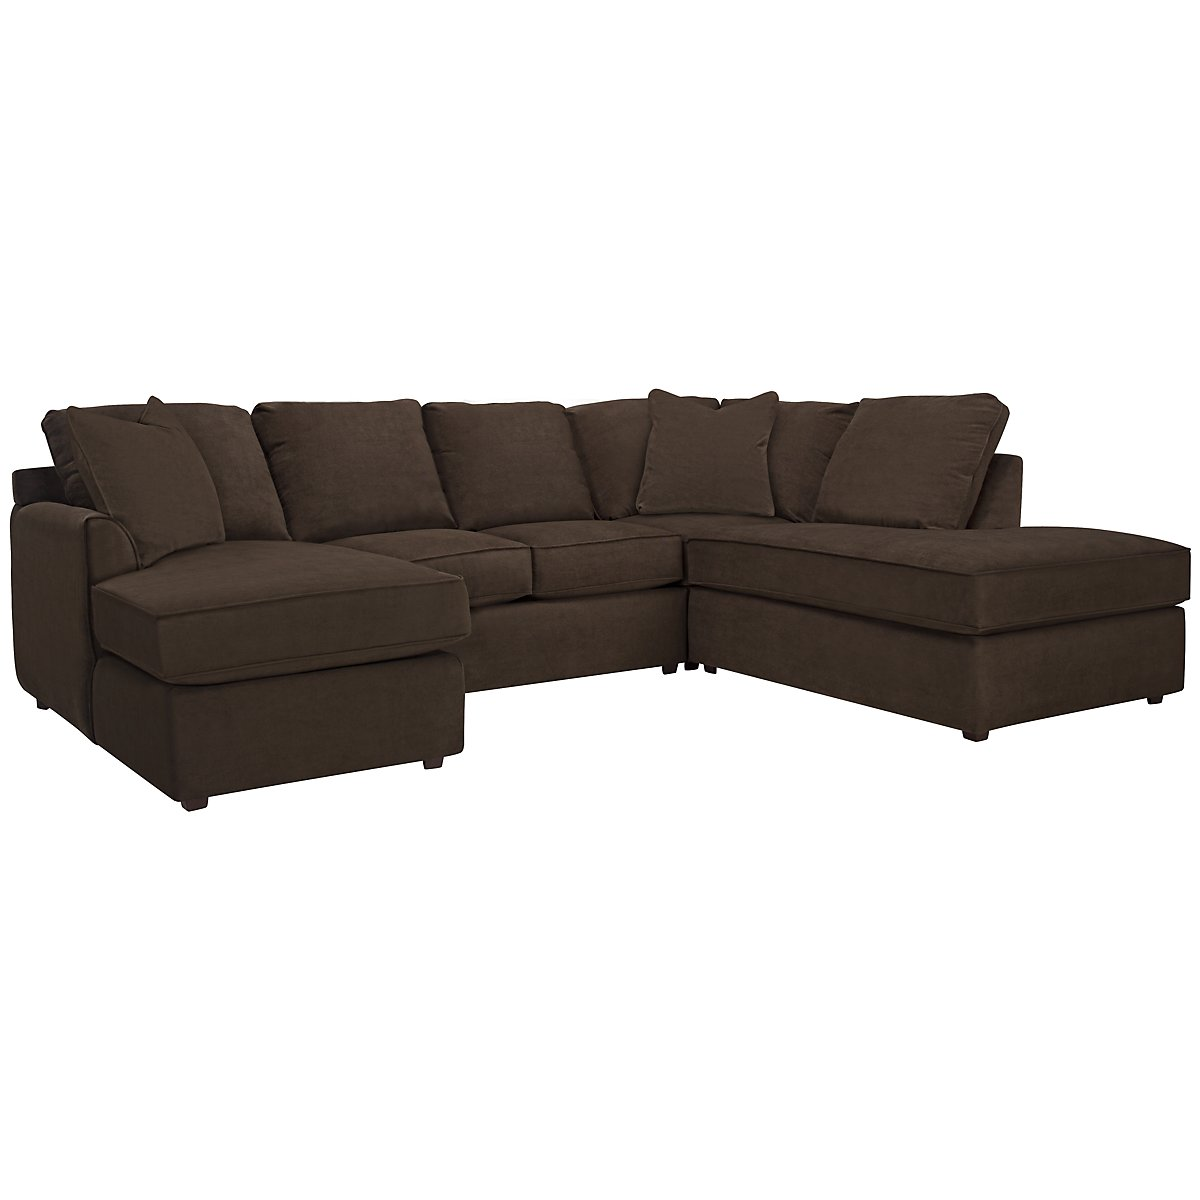 Express3 Dark Brown Microfiber Small Right Bumper Sectional